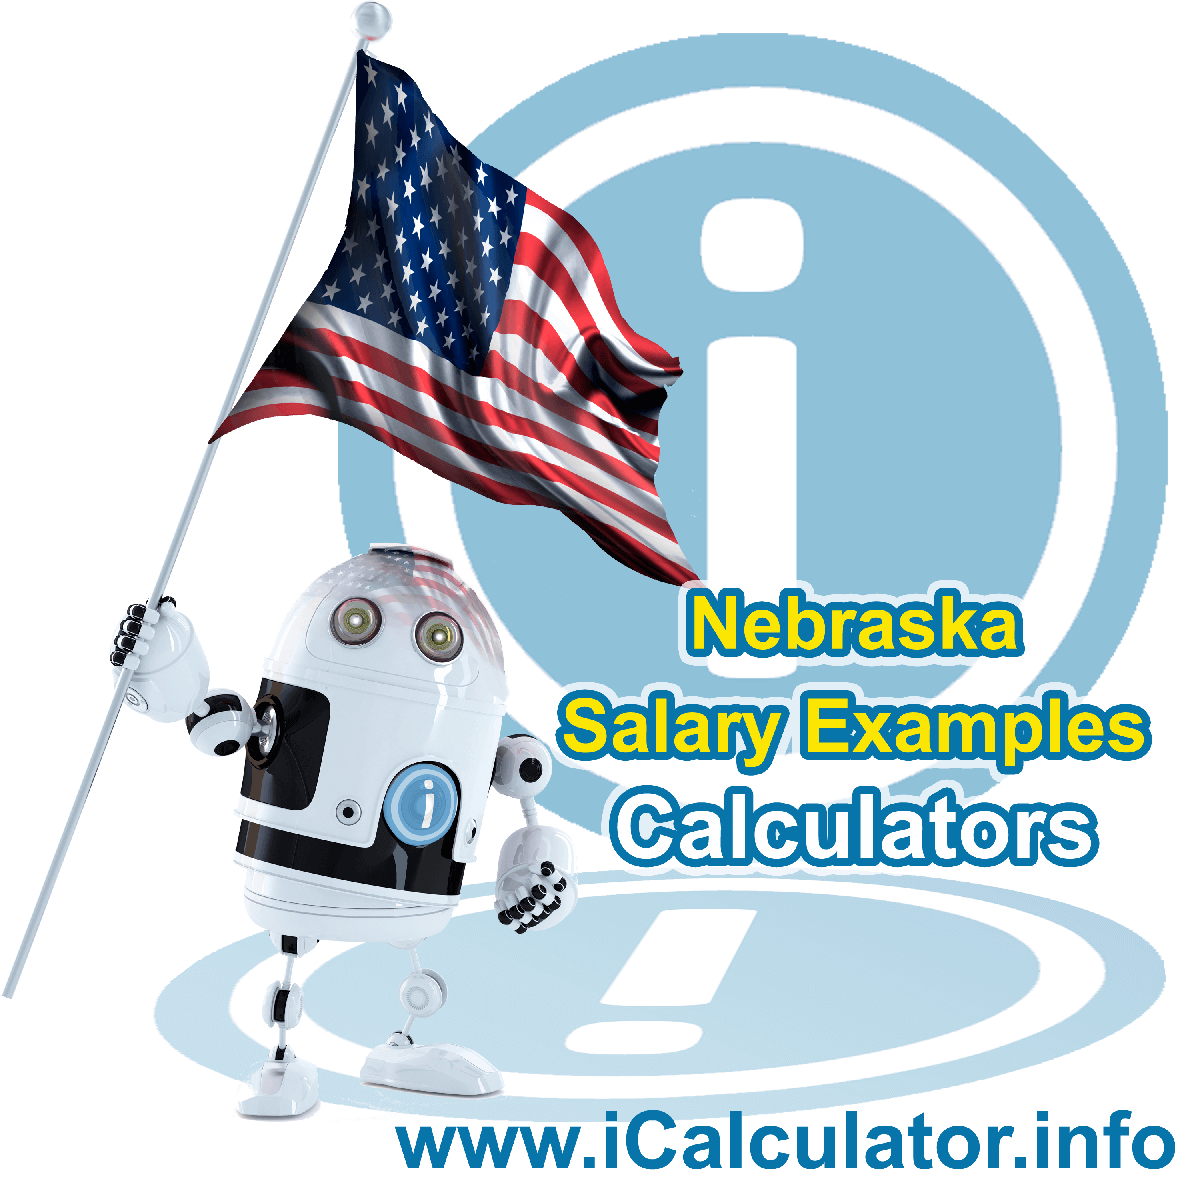 Nebraska Salary Example for $50,000.00 in 2020 | iCalculator | $50,000.00 salary example for employee and employer paying Nebraska State tincome taxes. Detailed salary after tax calculation including Nebraska State Tax, Federal State Tax, Medicare Deductions, Social Security, Capital Gains and other income tax and salary deductions complete with supporting Nebraska state tax tables